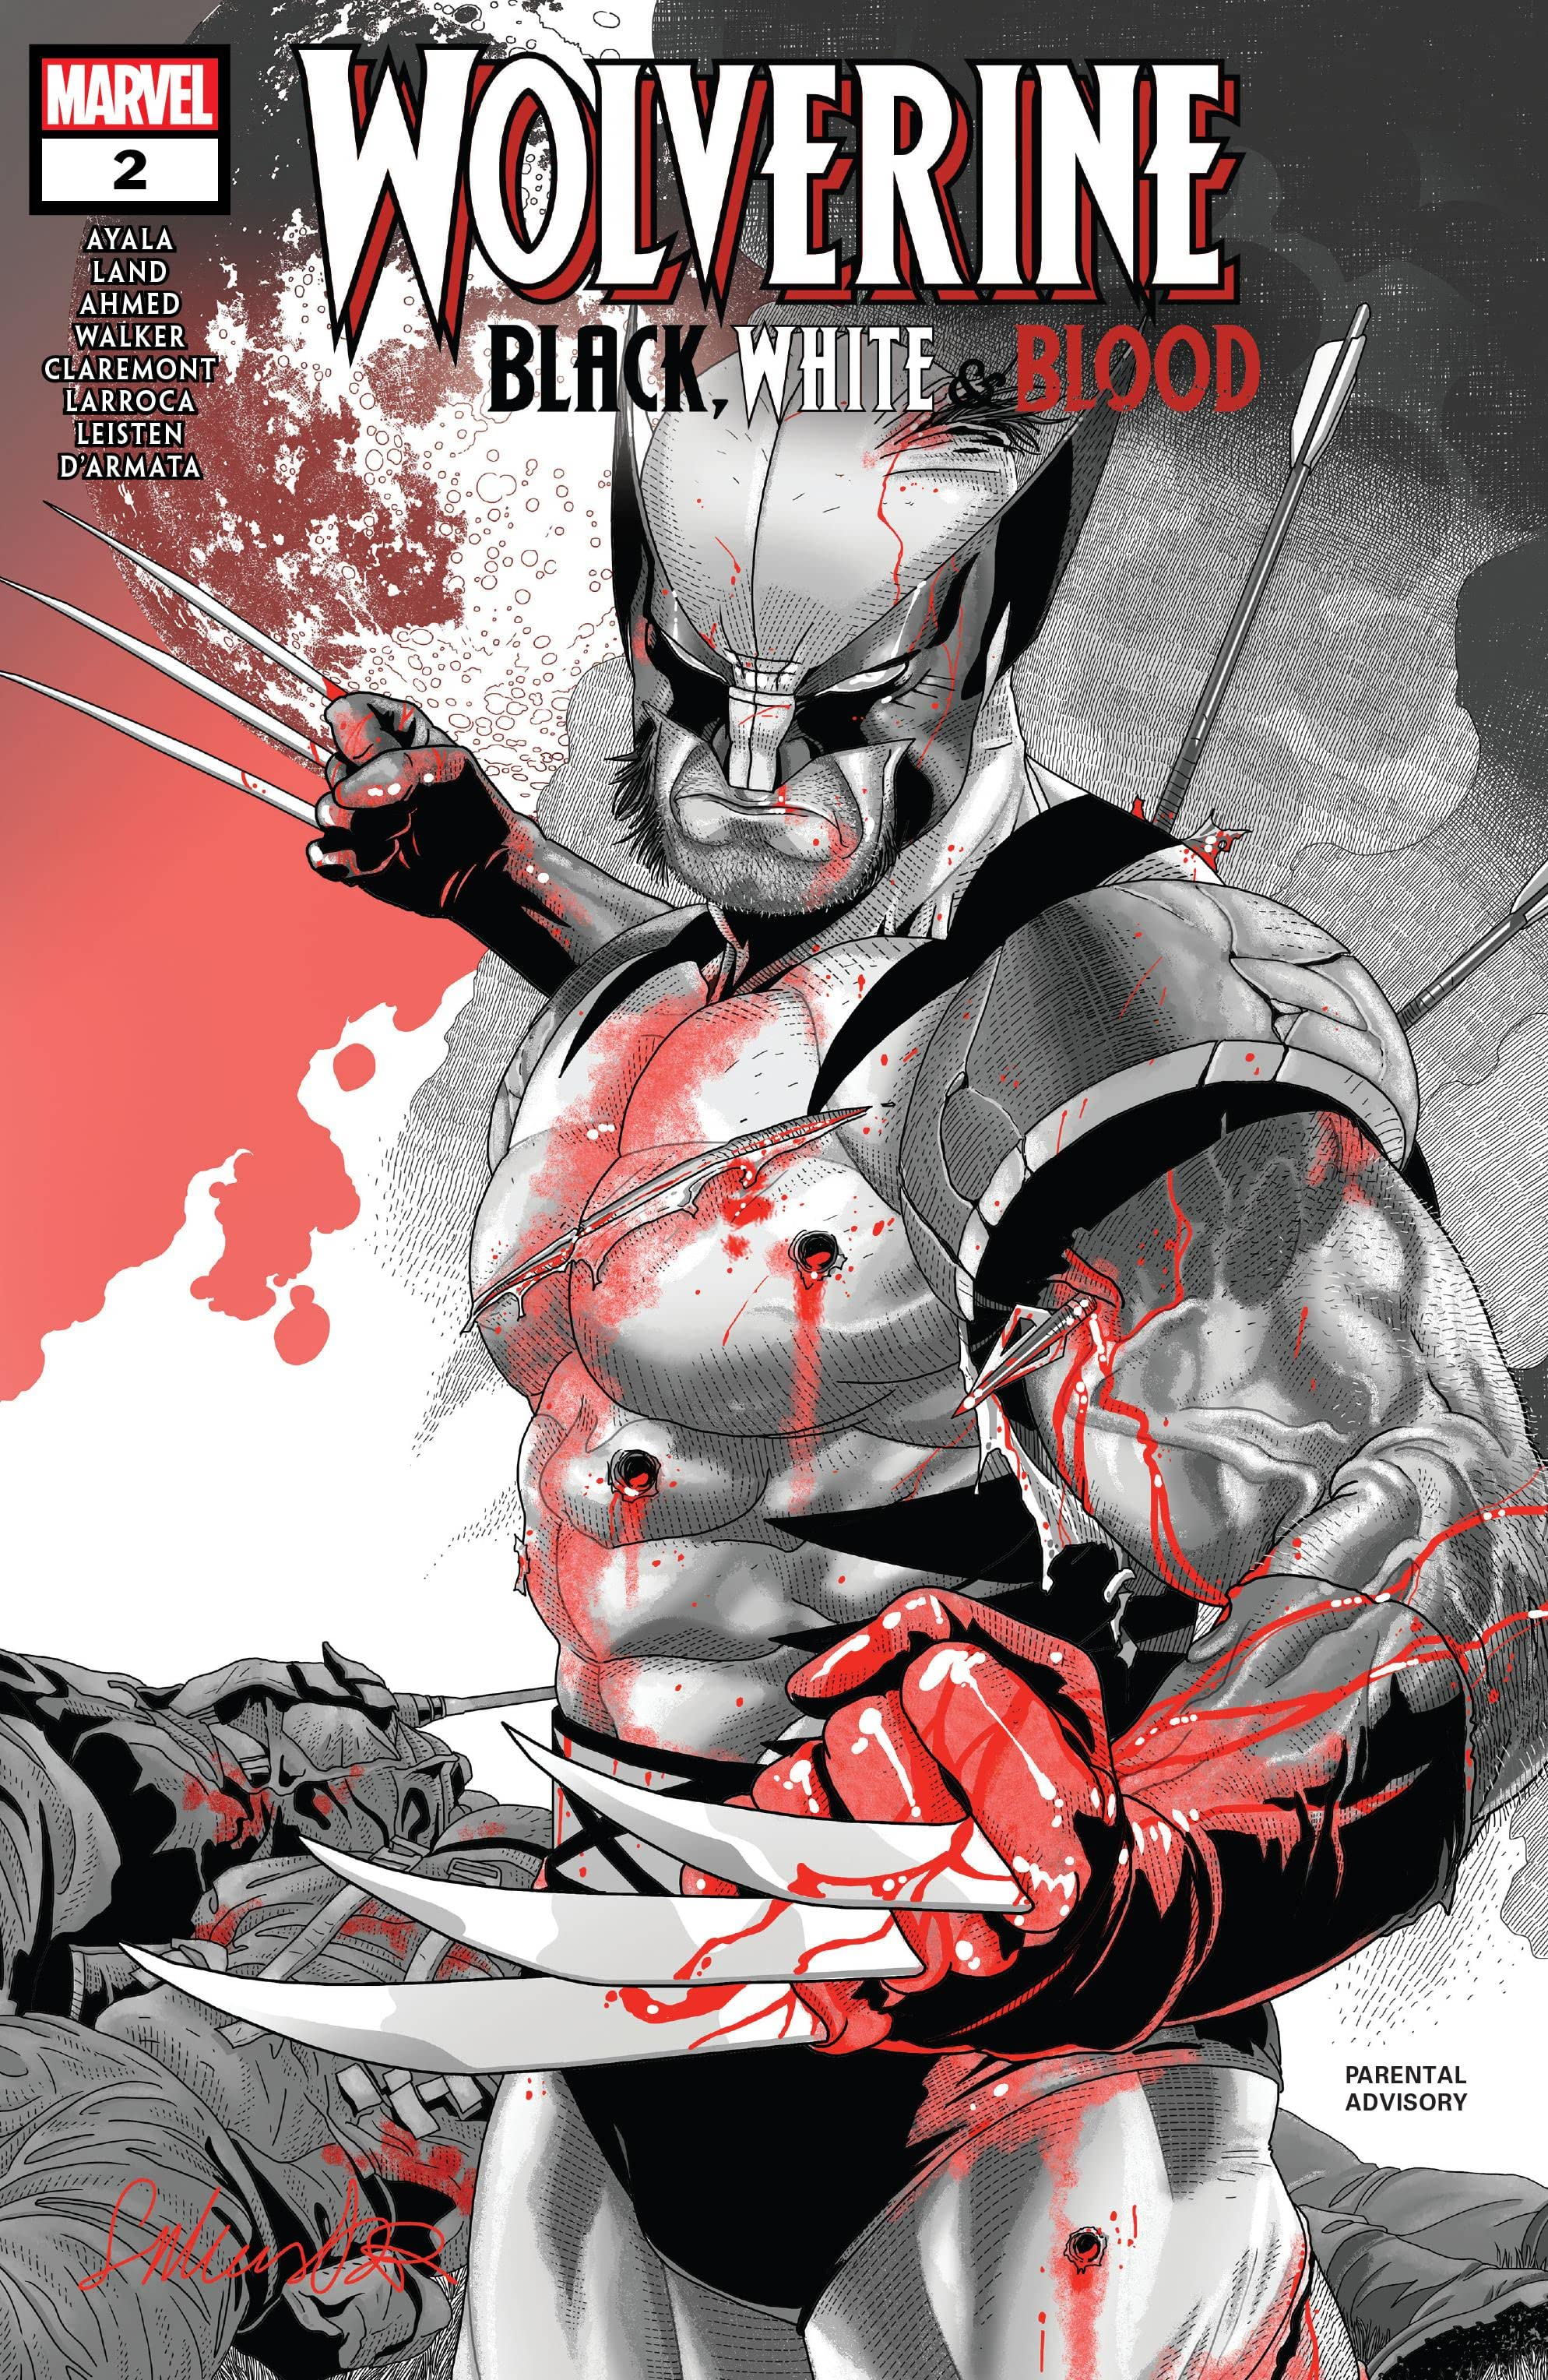 Wolverine: Black, White & Blood Vol 1 2